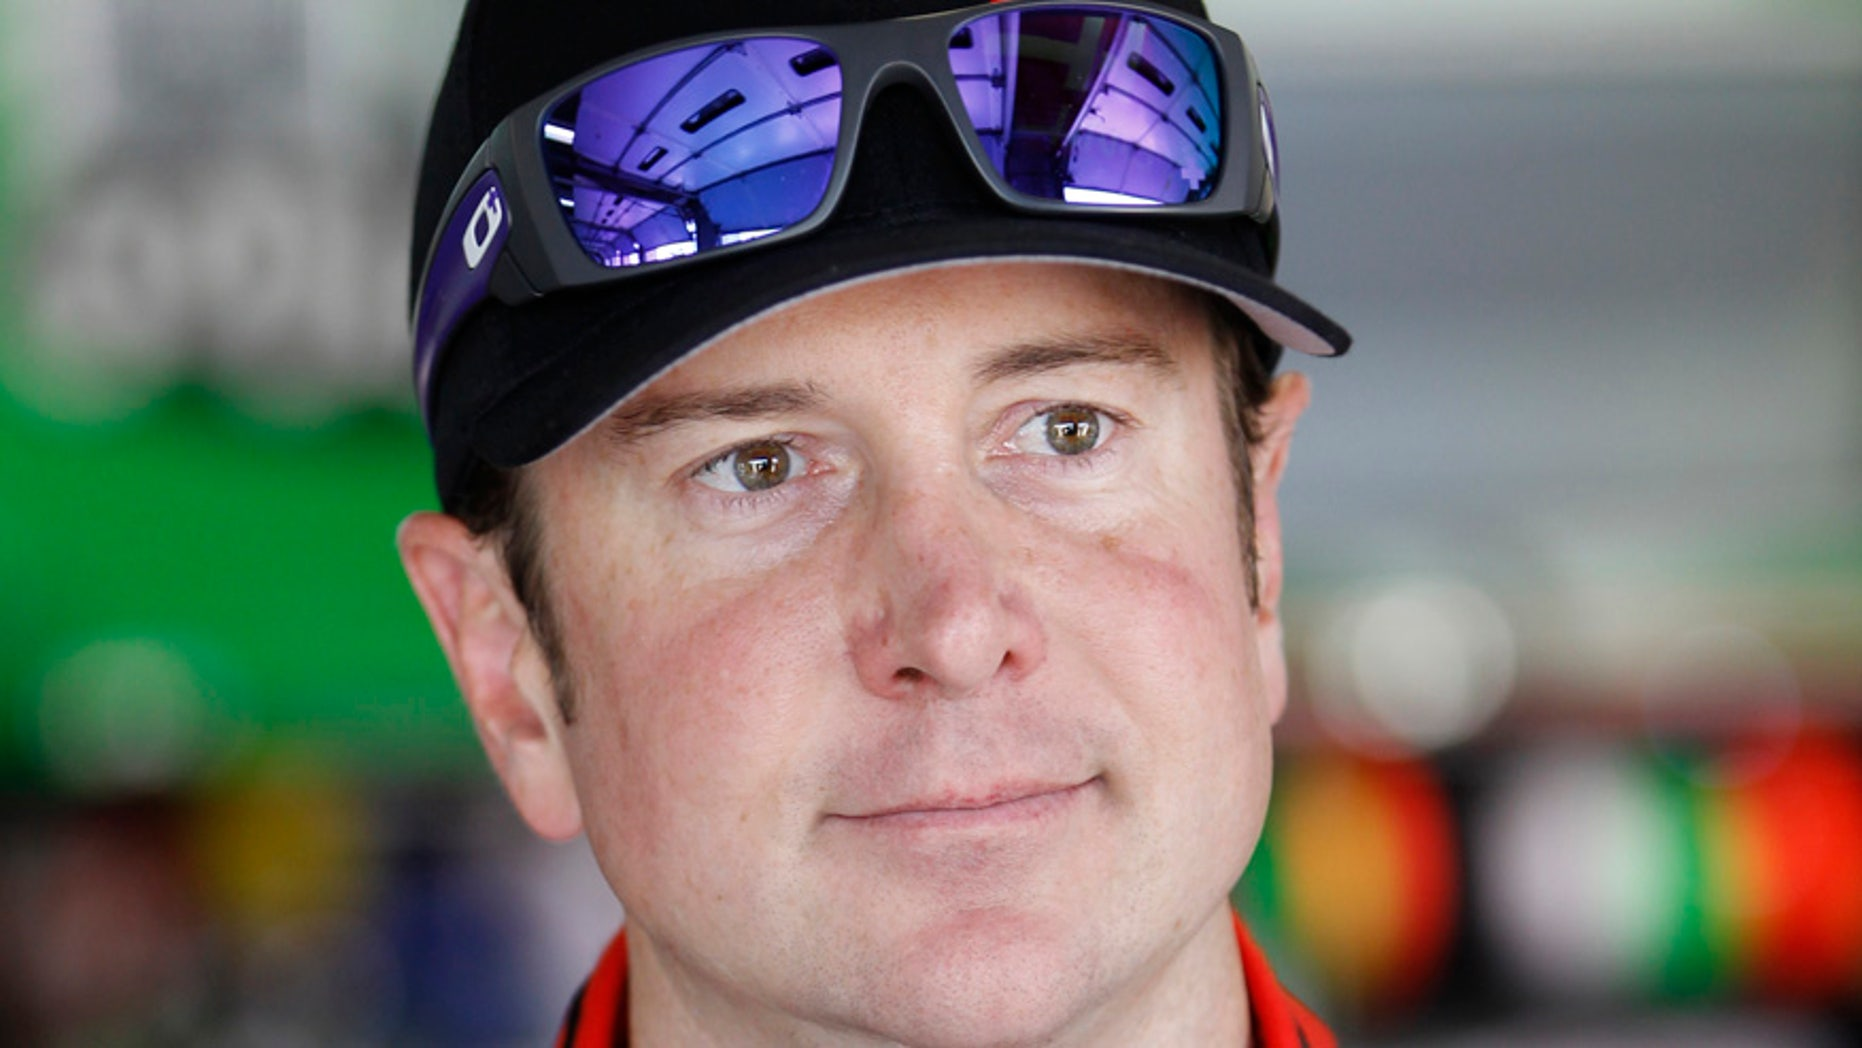 FILE - This is a May 22, 2014, file photo showing Kurt Busch waiting by his car before practice for the NASCAR Sprint Cup series Coca-Cola 600 auto race at Charlotte Motor Speedway in Concord, N.C.  Police in Delaware have interviewed NASCAR driver Kurt Busch and are continuing to investigate allegations by his ex-girlfriend that he assaulted her during the September race at Dover International Speedway. Busch, 36, and his attorneys met with investigators Tuesday, Nov. 18, 2014, Dover police spokesman Cpl. Mark Hoffman said. (AP Photo/Terry Renna, File)